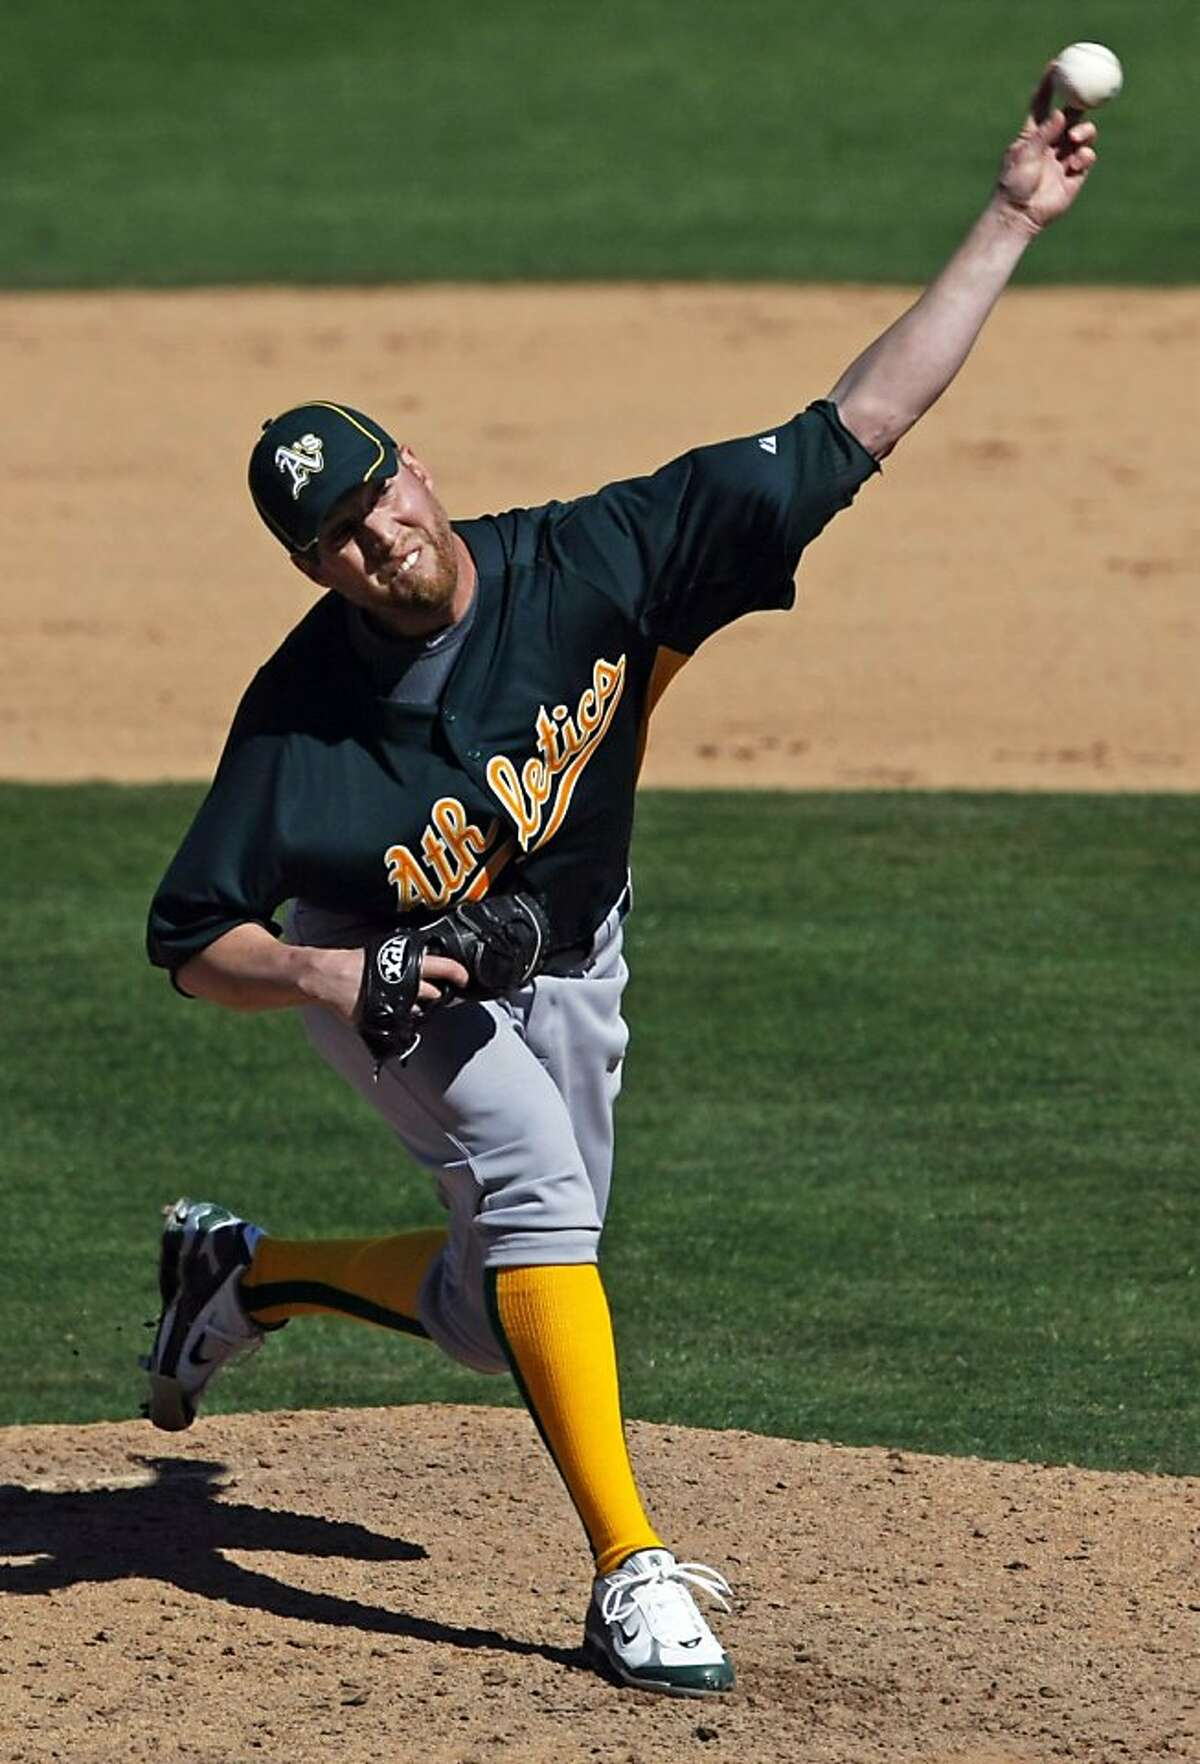 Oakland Athletics pitcher Josh Outman throws to the Chicago Cubs in the first inning of a spring training game at HoHoKam Park in Mesa, Ariz., on Sunday.